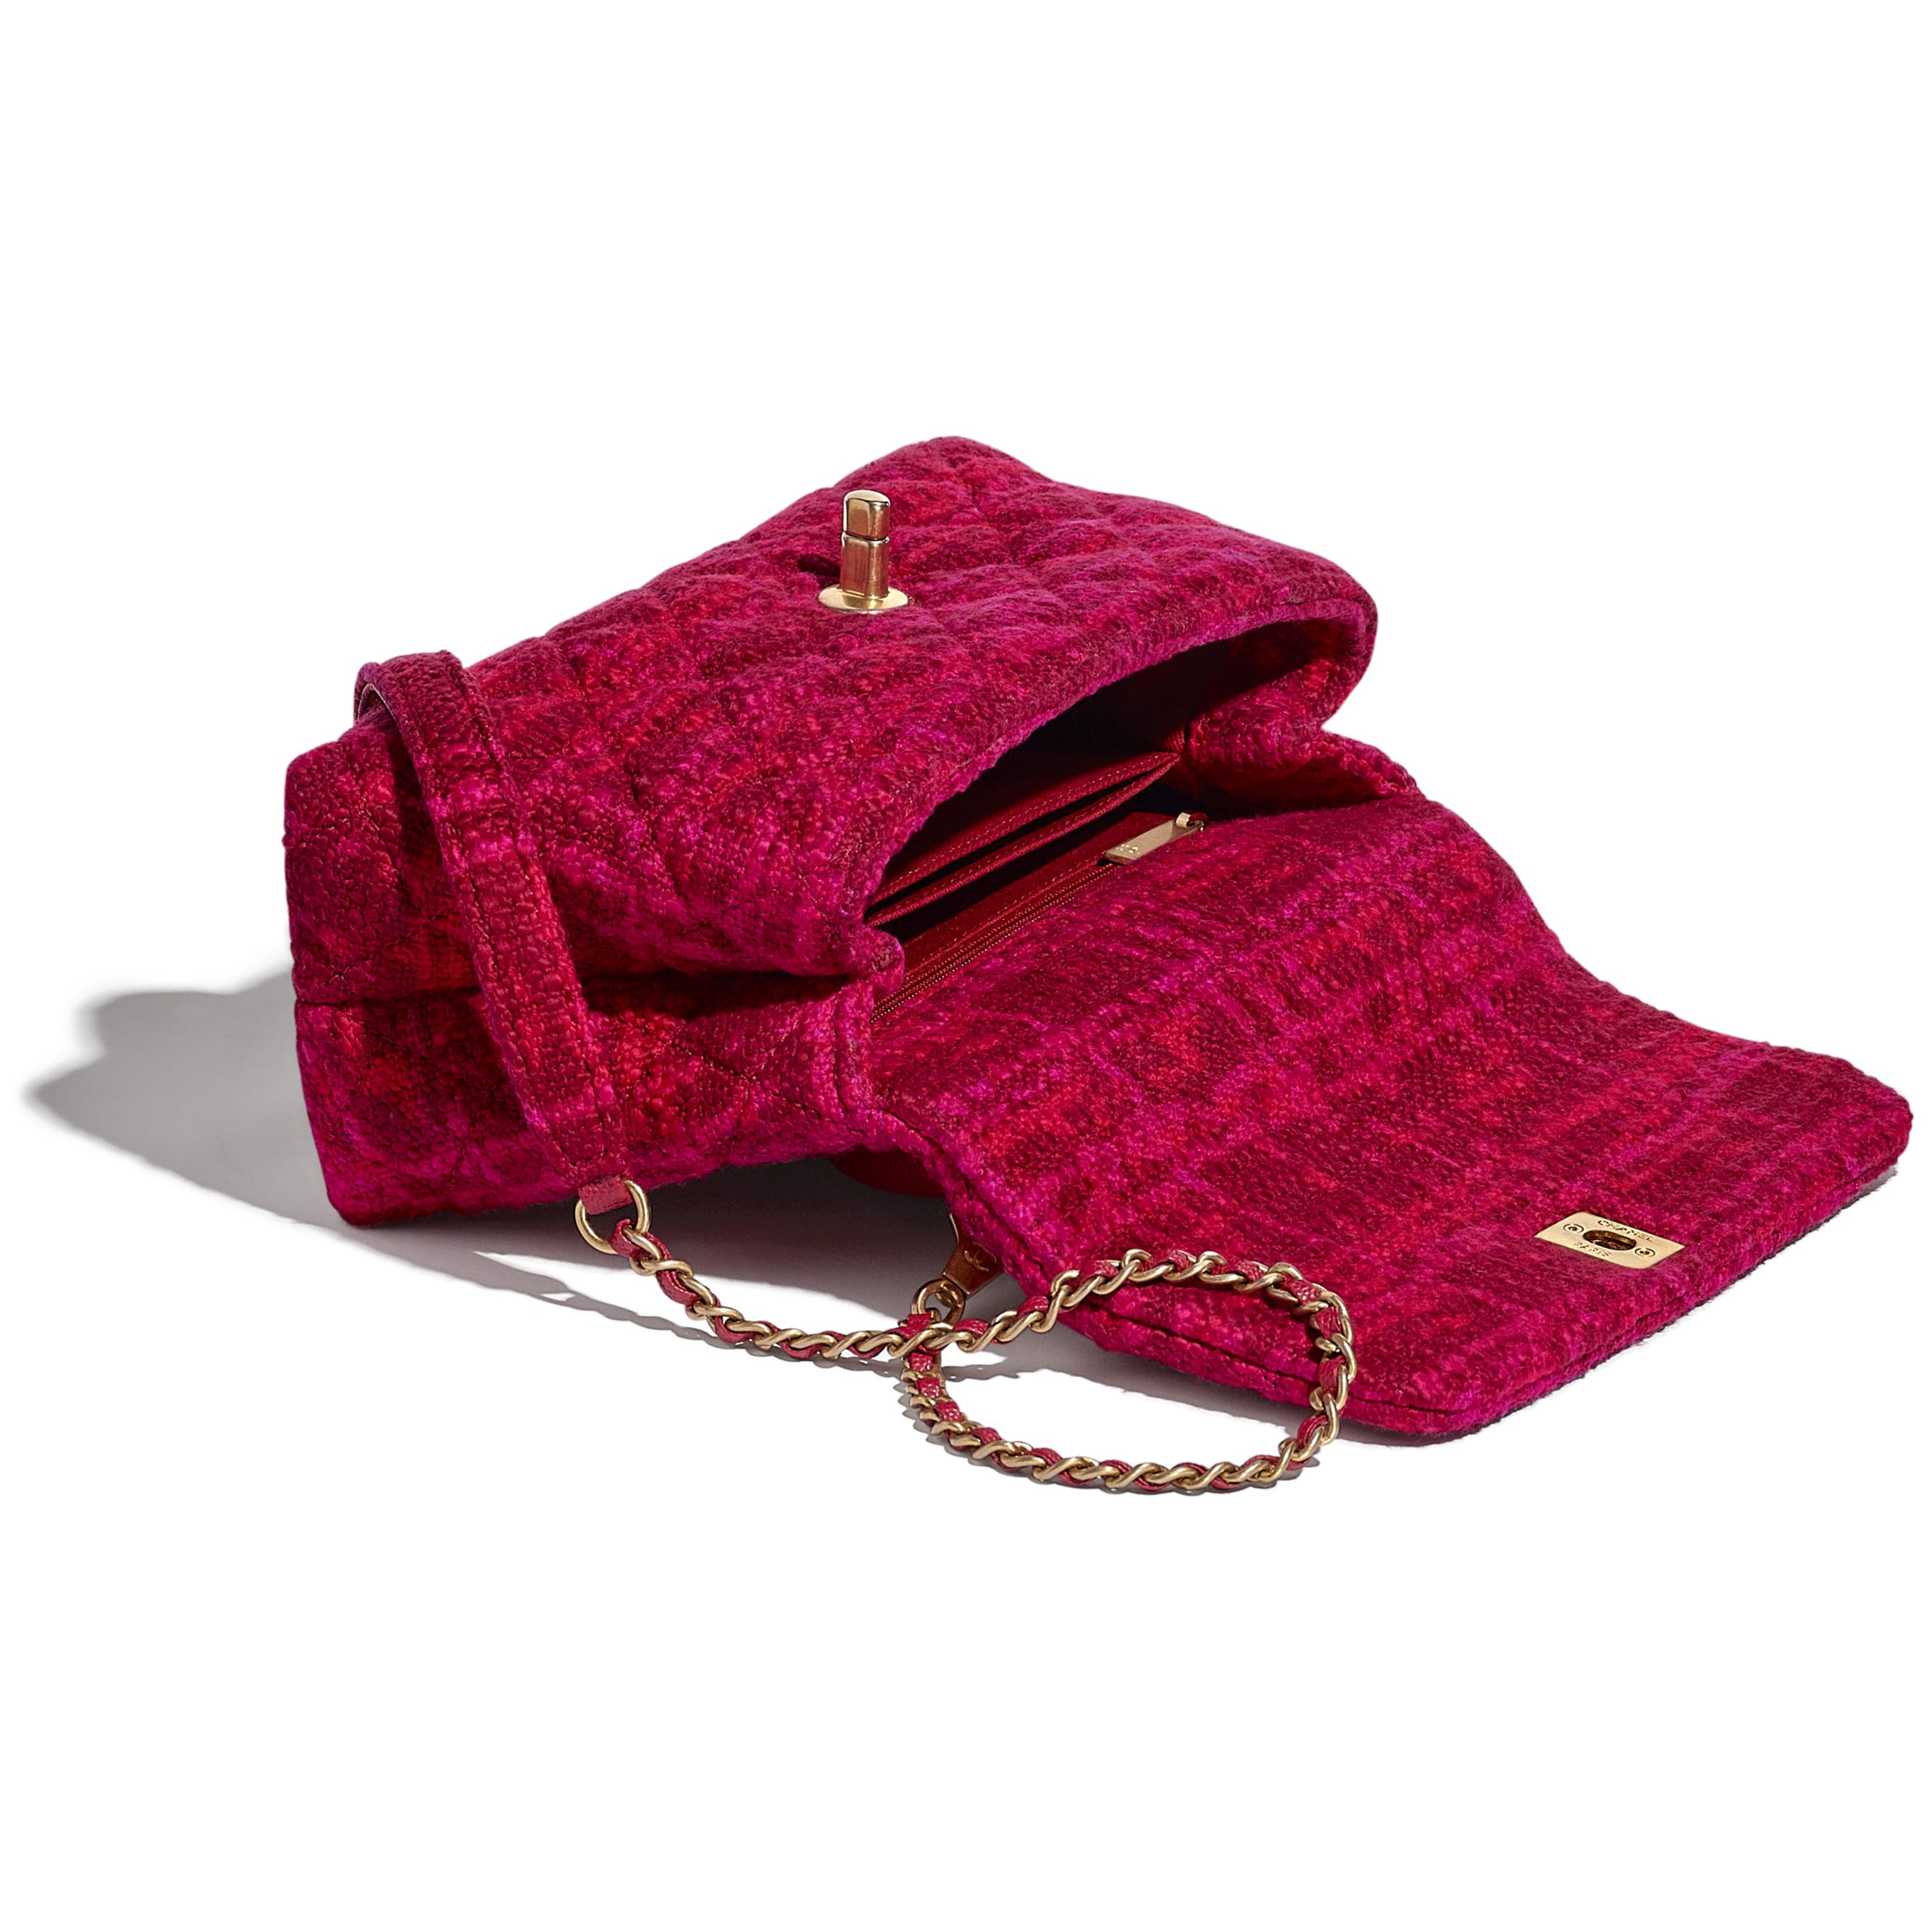 Small Flap Bag with Top Handle - Fuchsia & Red - Cotton Tweed, Grained Calfskin & Gold-Tone Metal - CHANEL - Other view - see standard sized version